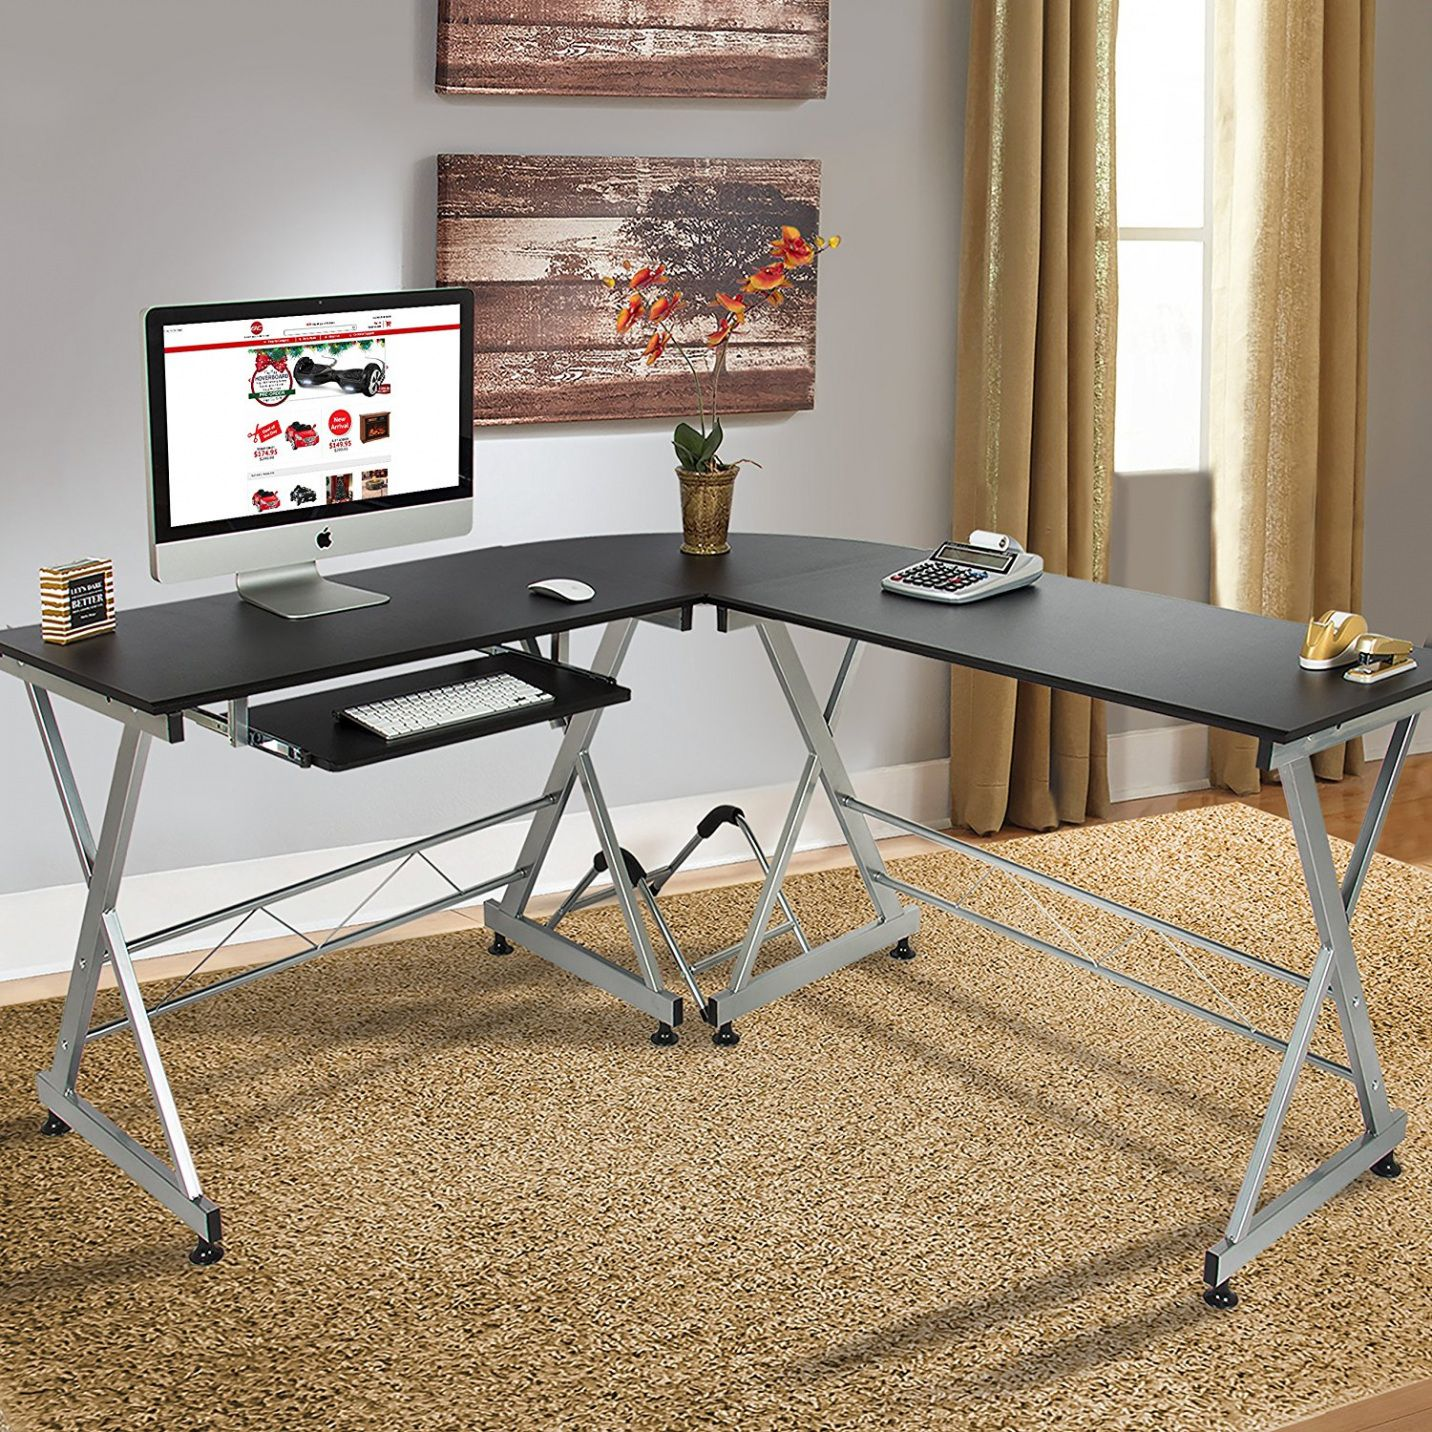 Laptop fice Desk Home fice Furniture Collections Check more